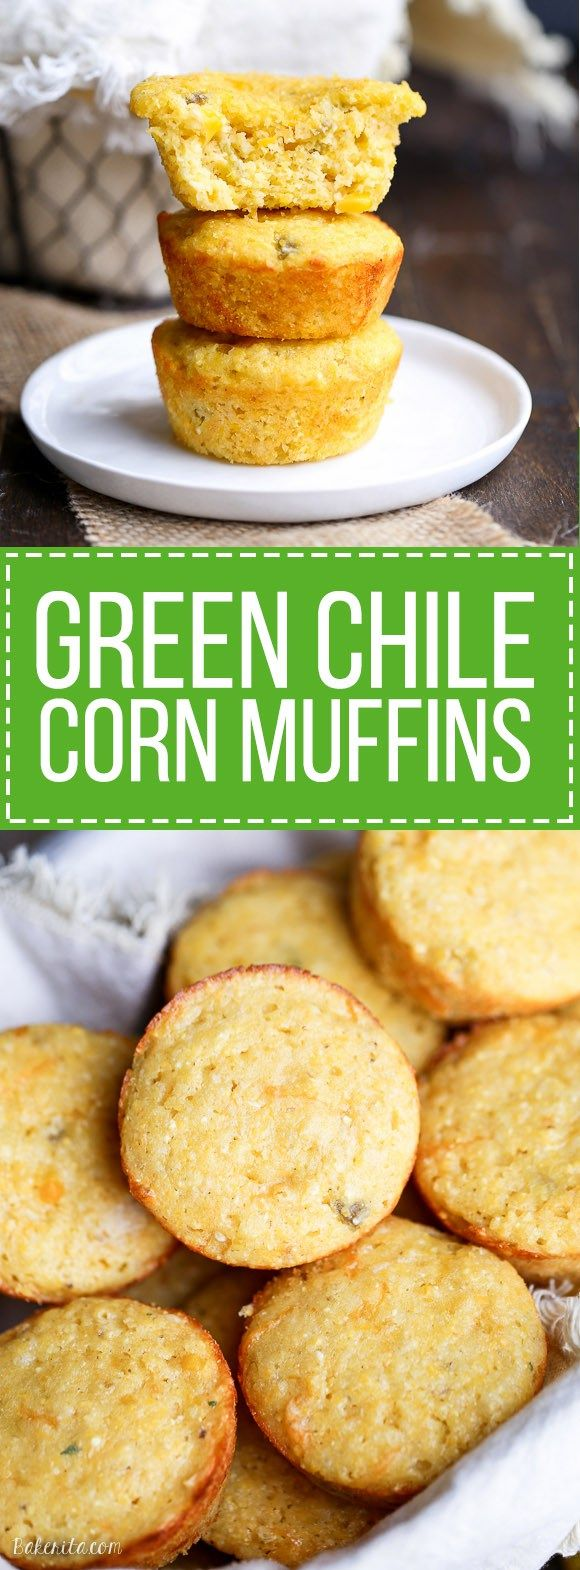 These Green Chile Corn Muffins are the best corn muffins I've ever had! Flavored with green chiles & cheddar cheese, they are perfect served with a bowl of chili. #oldelpaso #ad